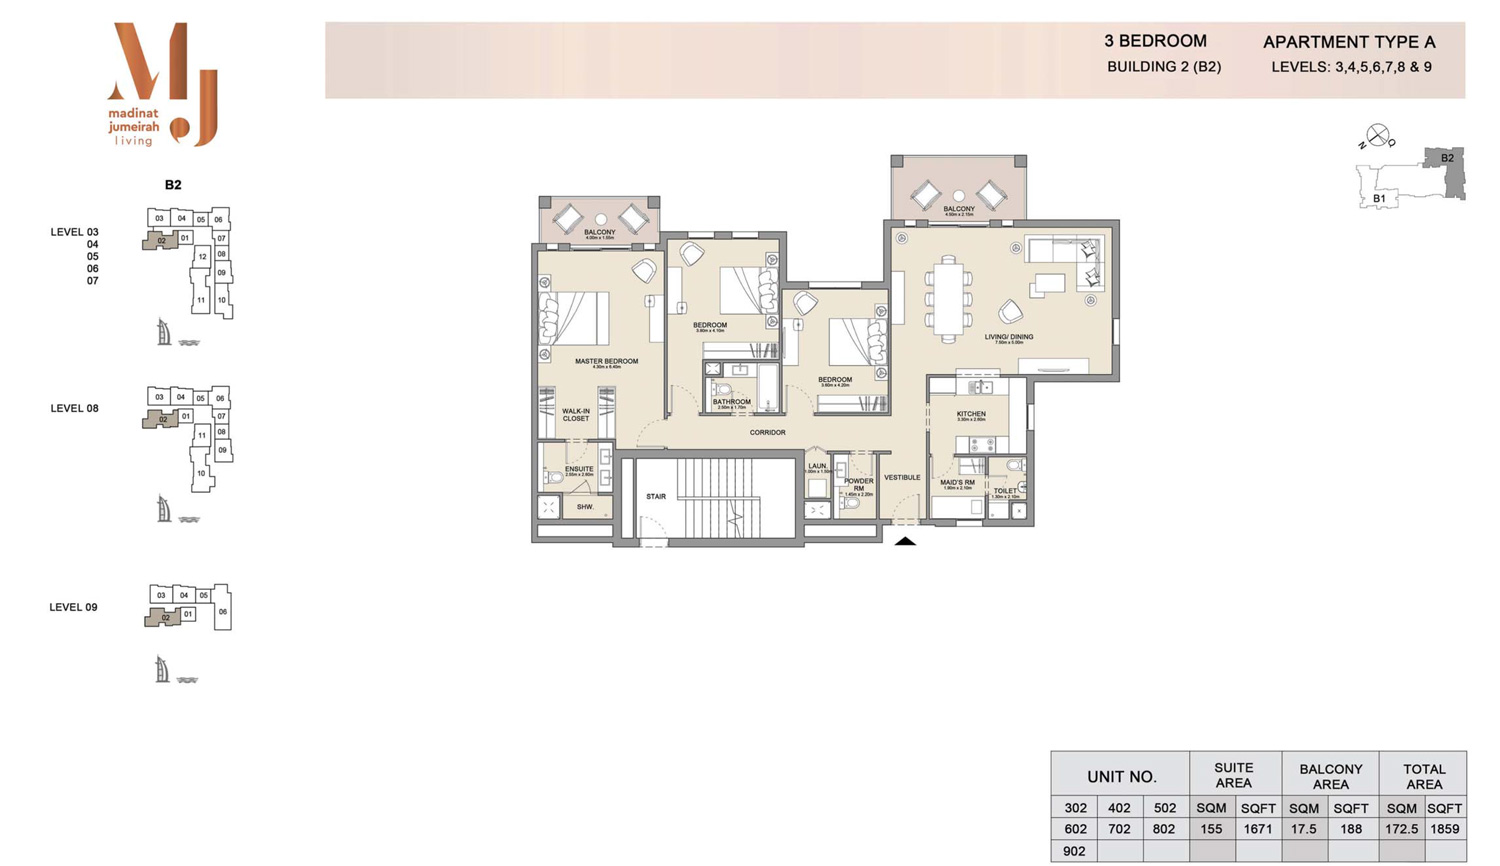 2 Bedroom B 2, Type A, Levels 3 to 9, Size 1859 sq.ft